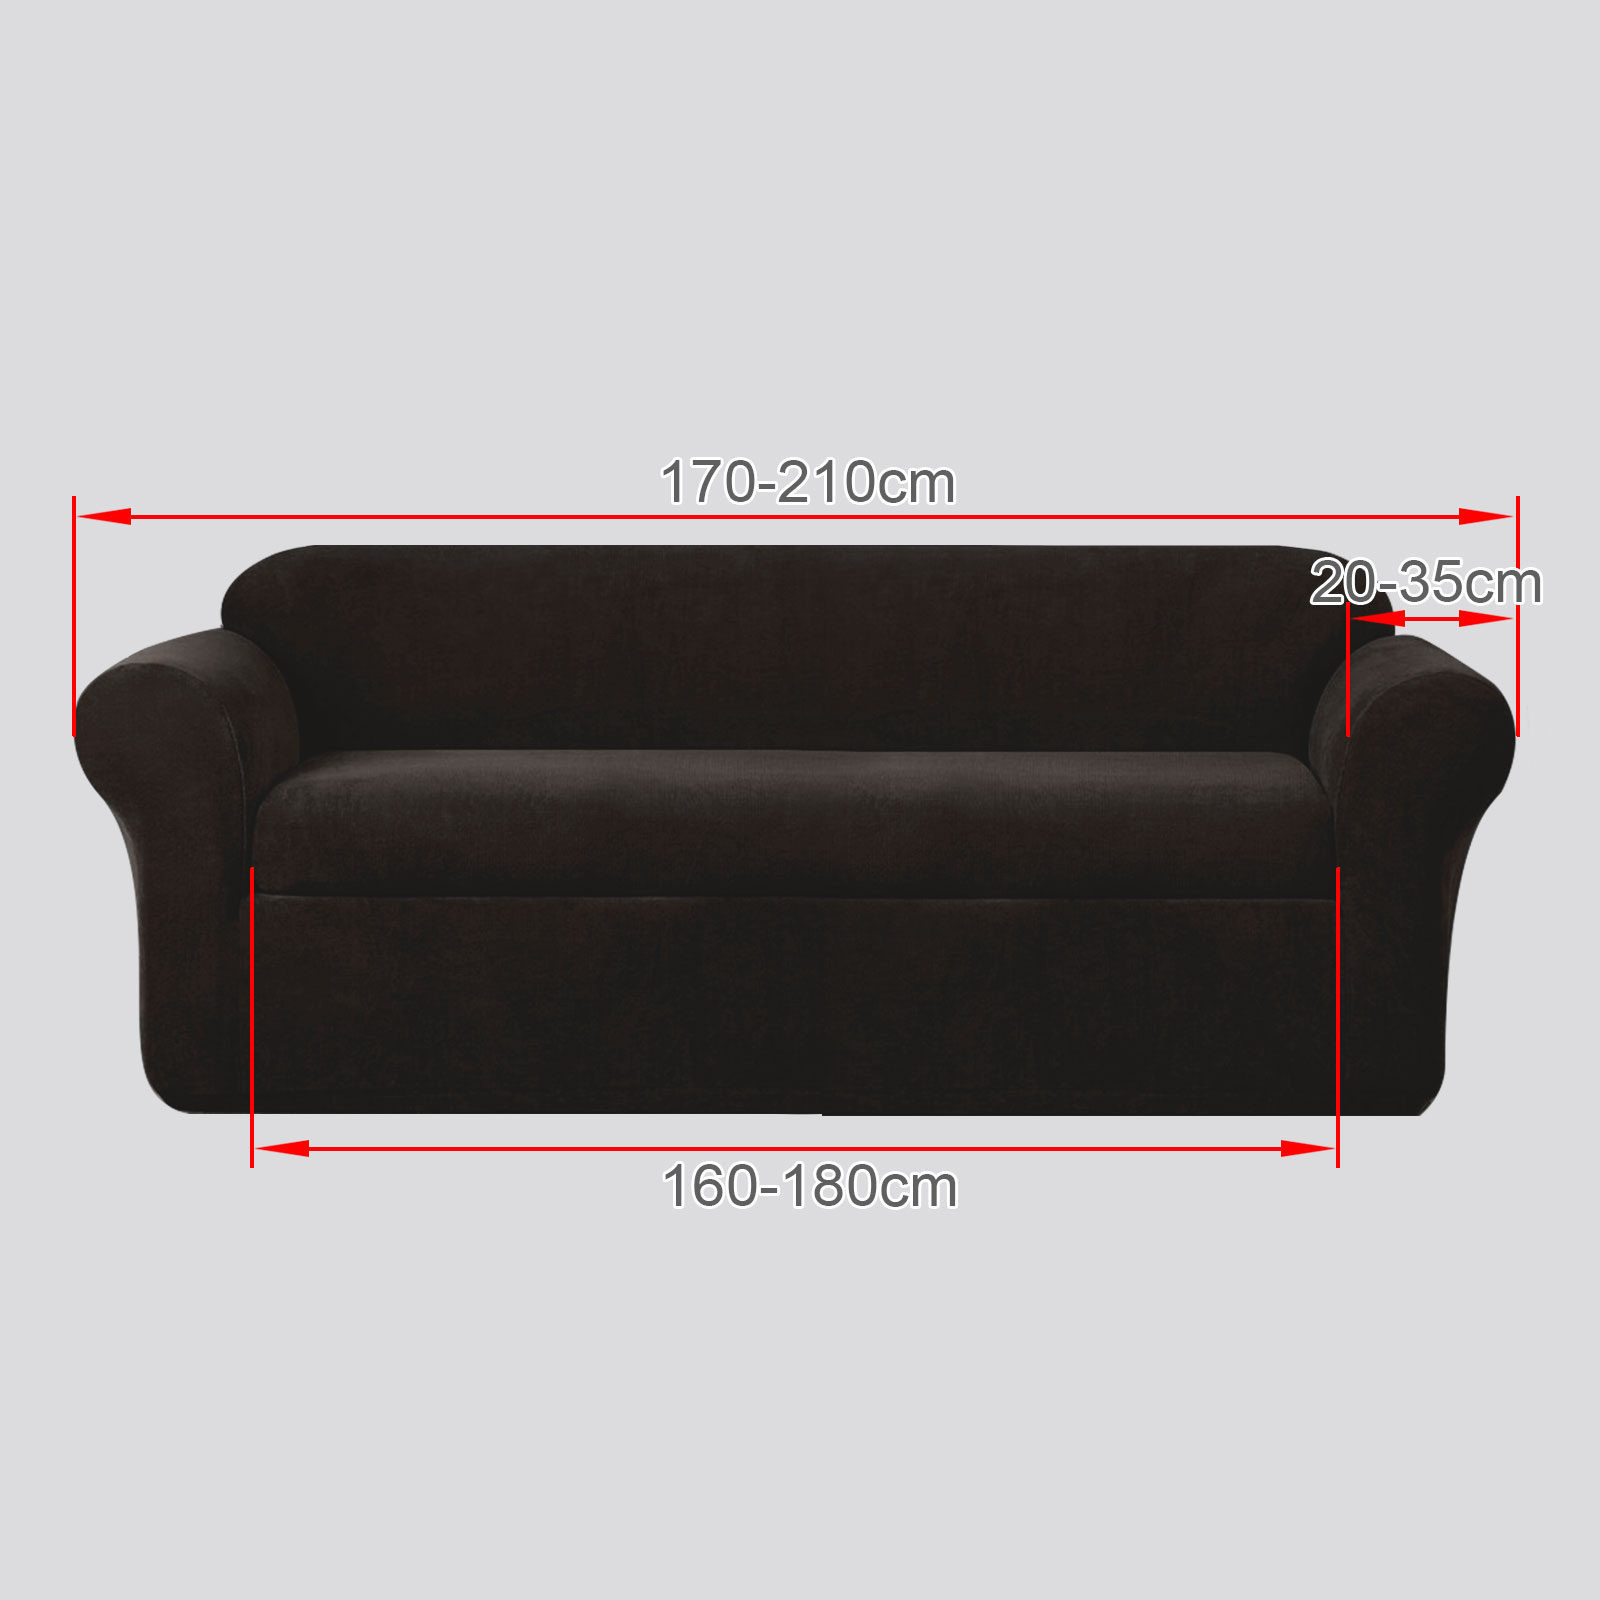 3 sitzer sofa sessel ersatz sofabezug staubschutz stretch husse schokolade neu ebay. Black Bedroom Furniture Sets. Home Design Ideas